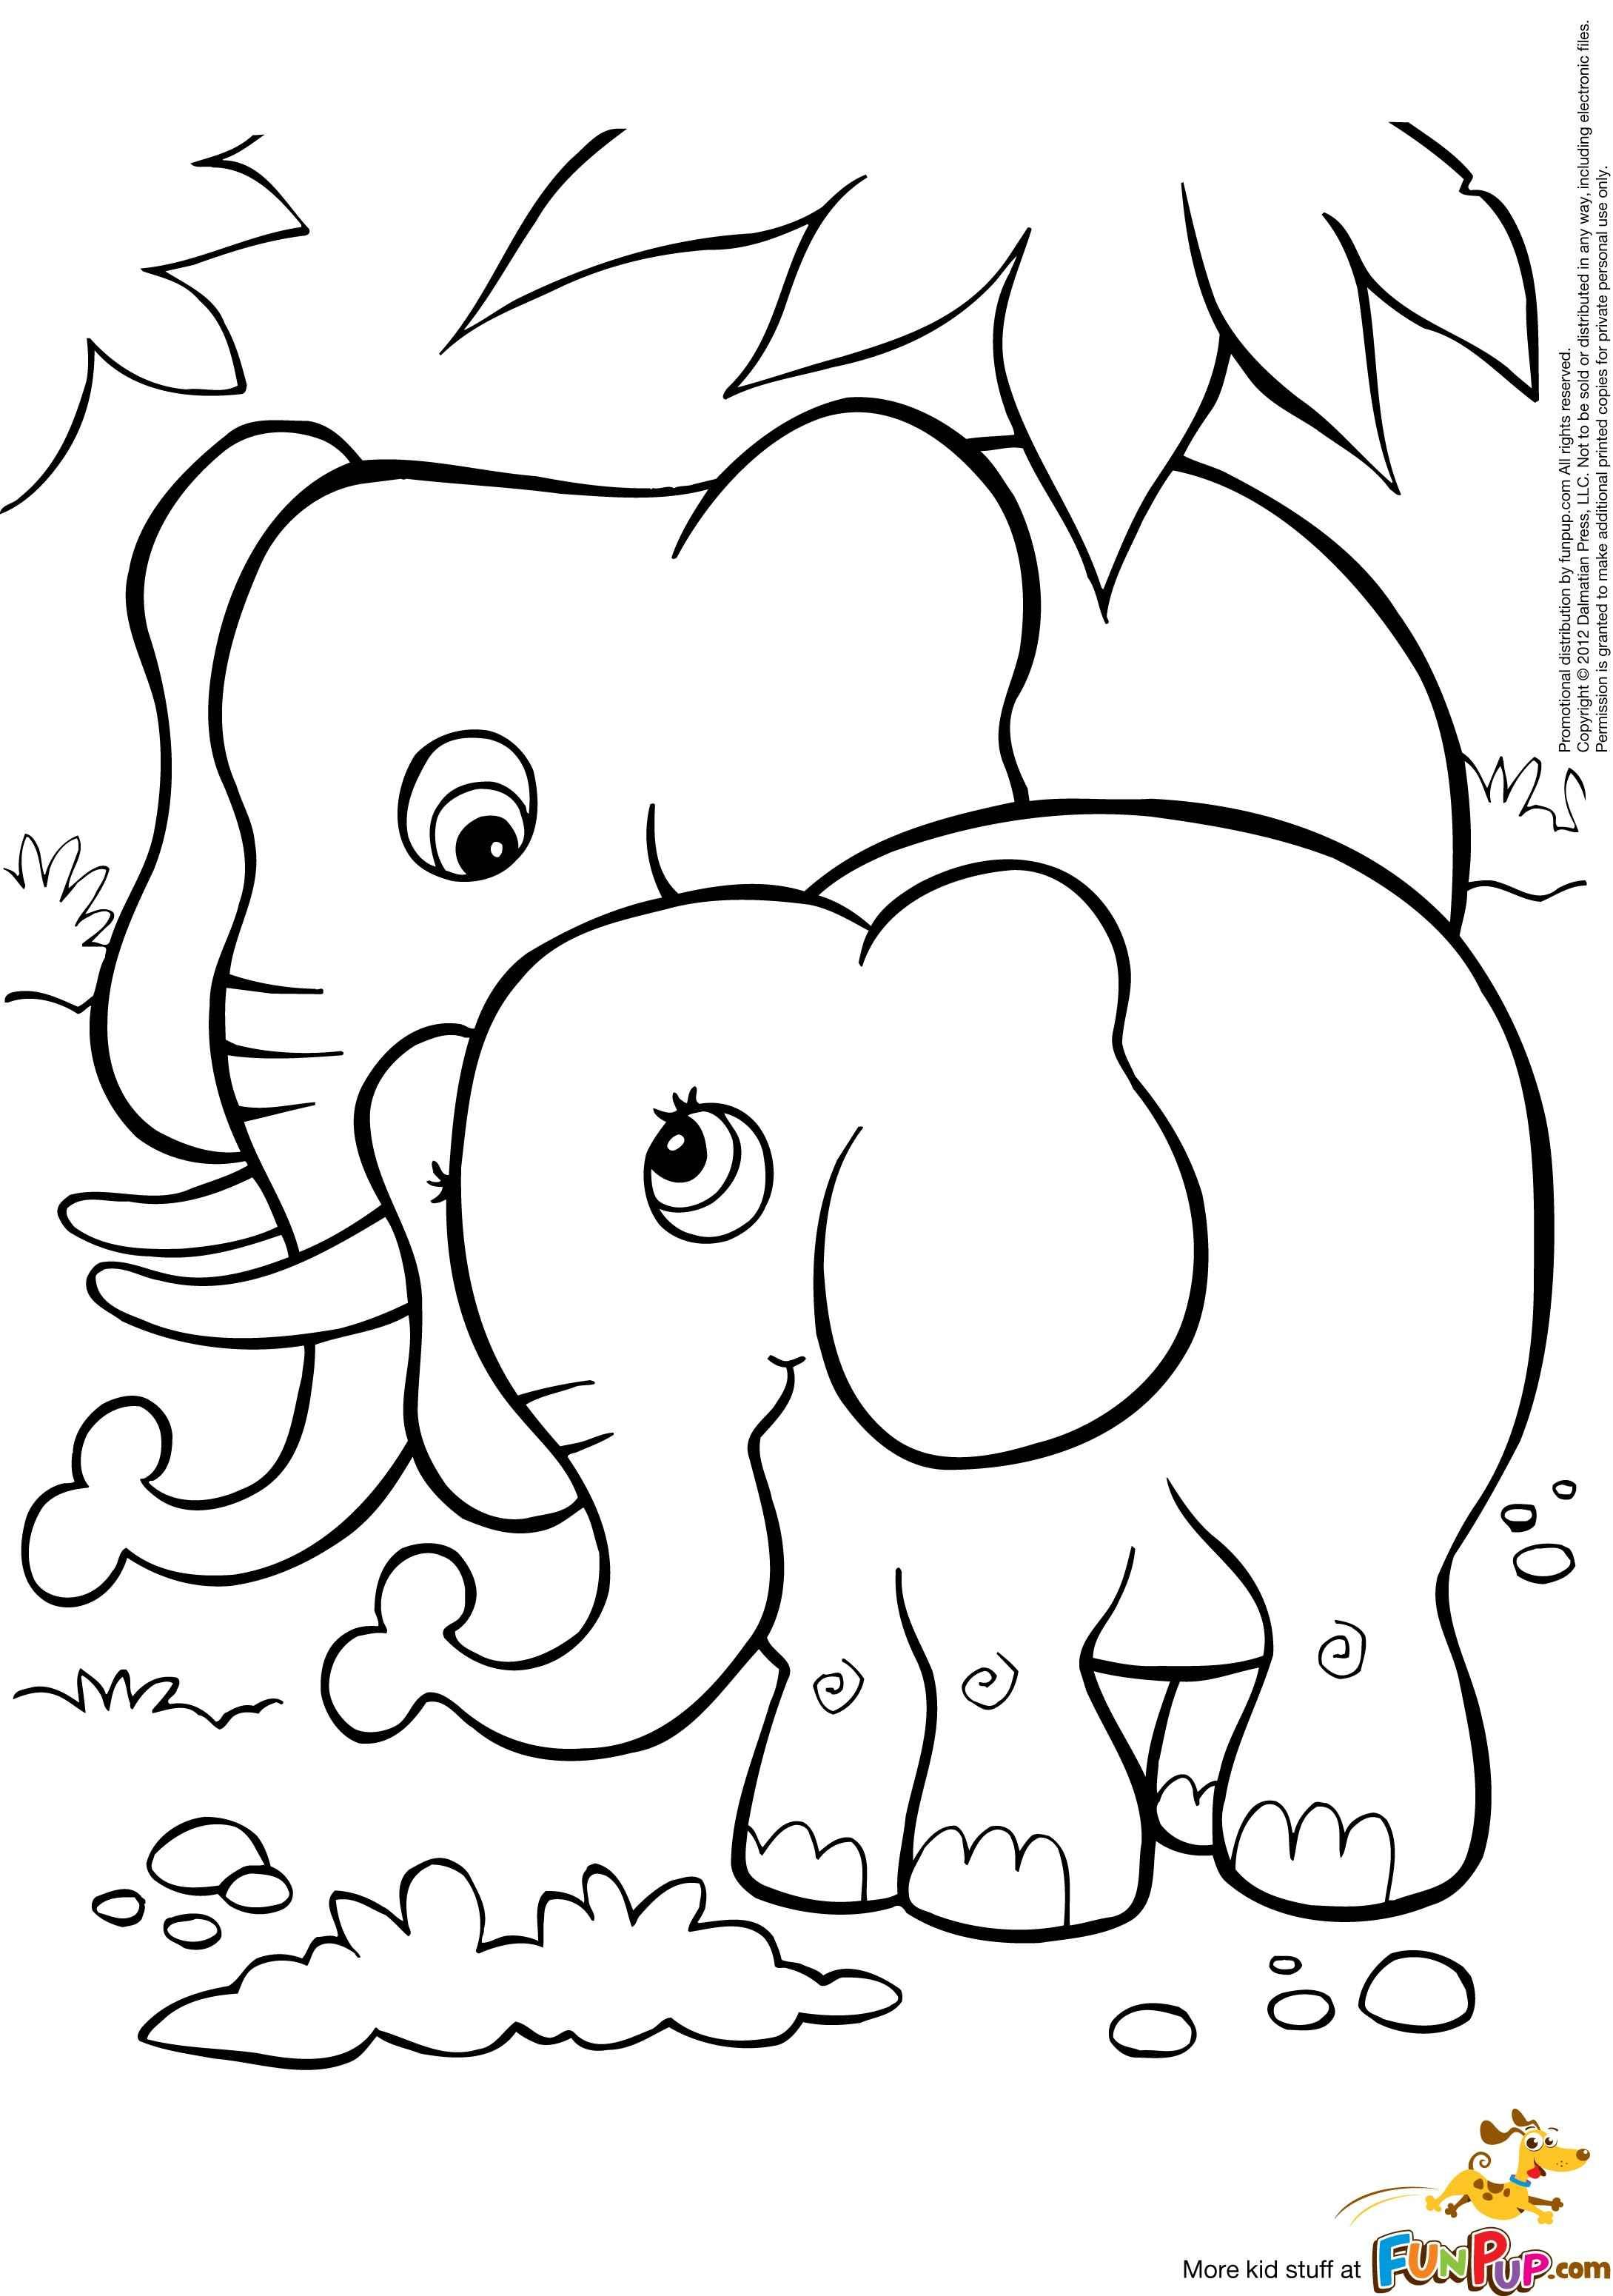 Pin By Elizabeth Oreal On Cute Baby Elephant Coloring Pages Elephant Coloring Page Summer Coloring Pages Coloring Books